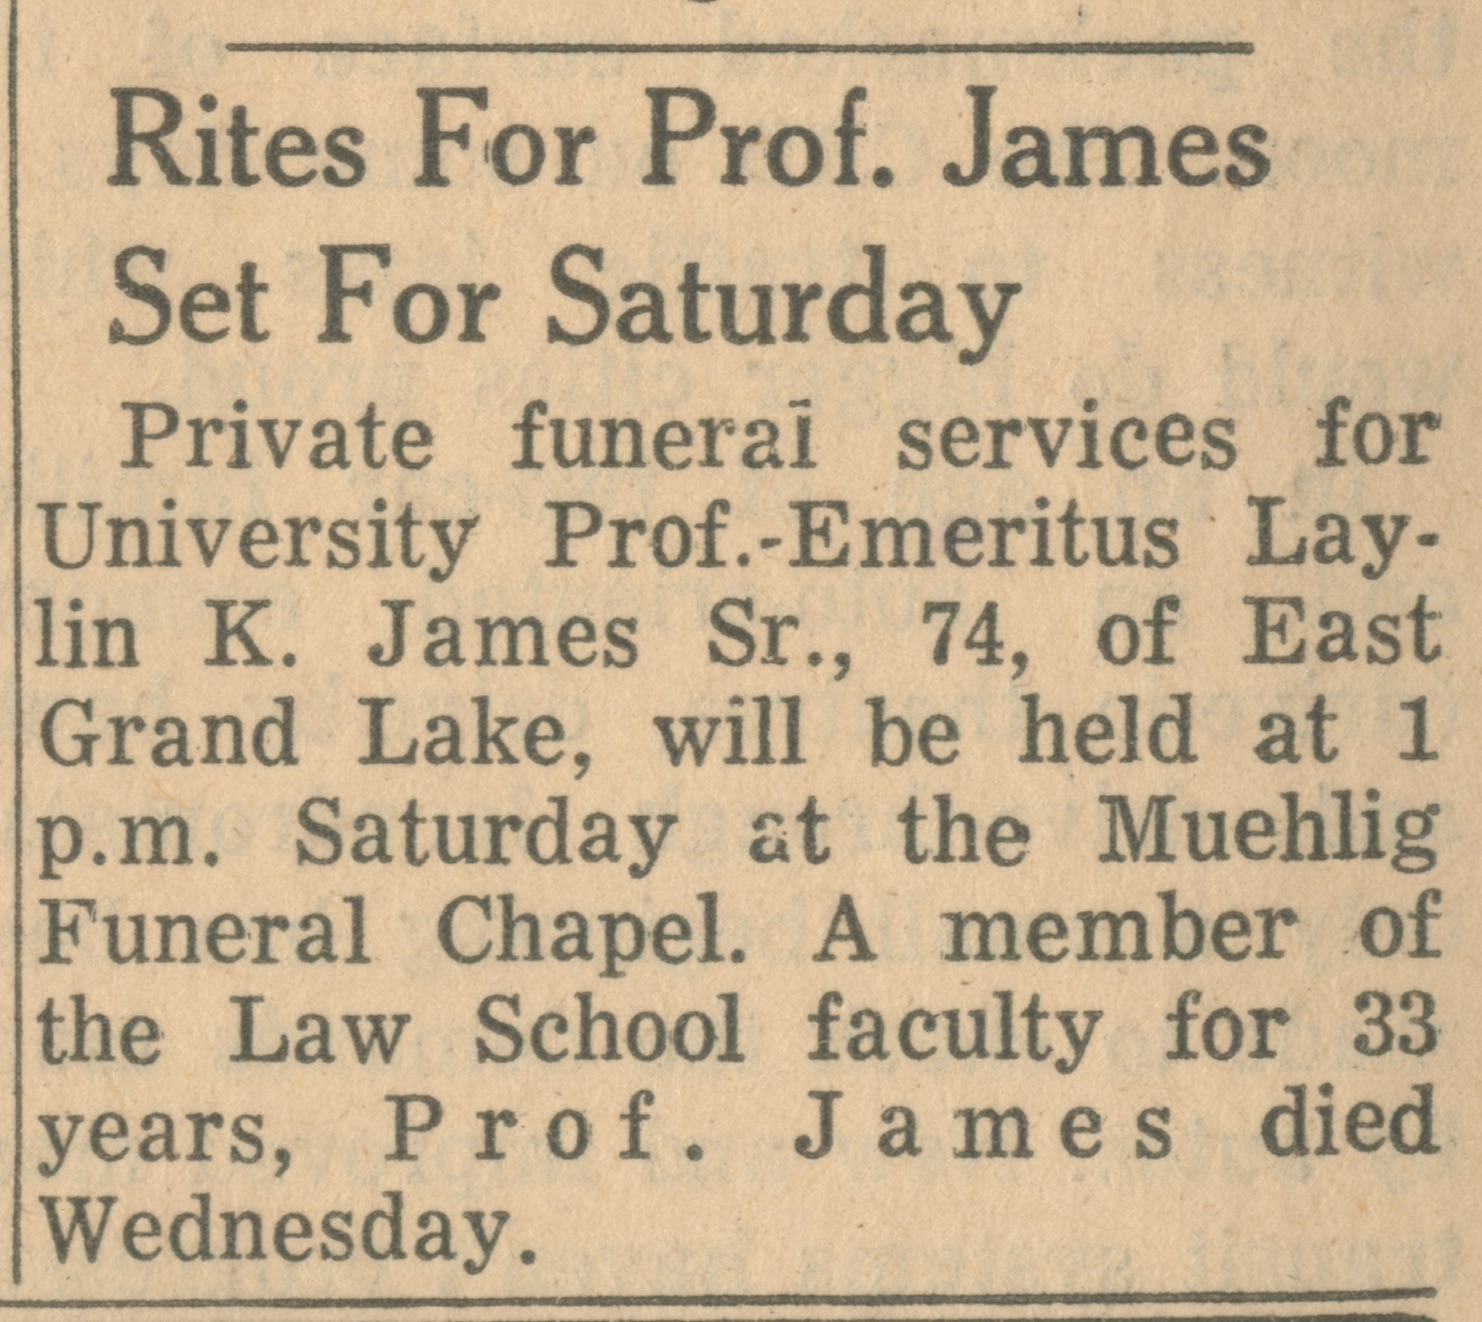 Rites For Prof. James Set For Saturday image